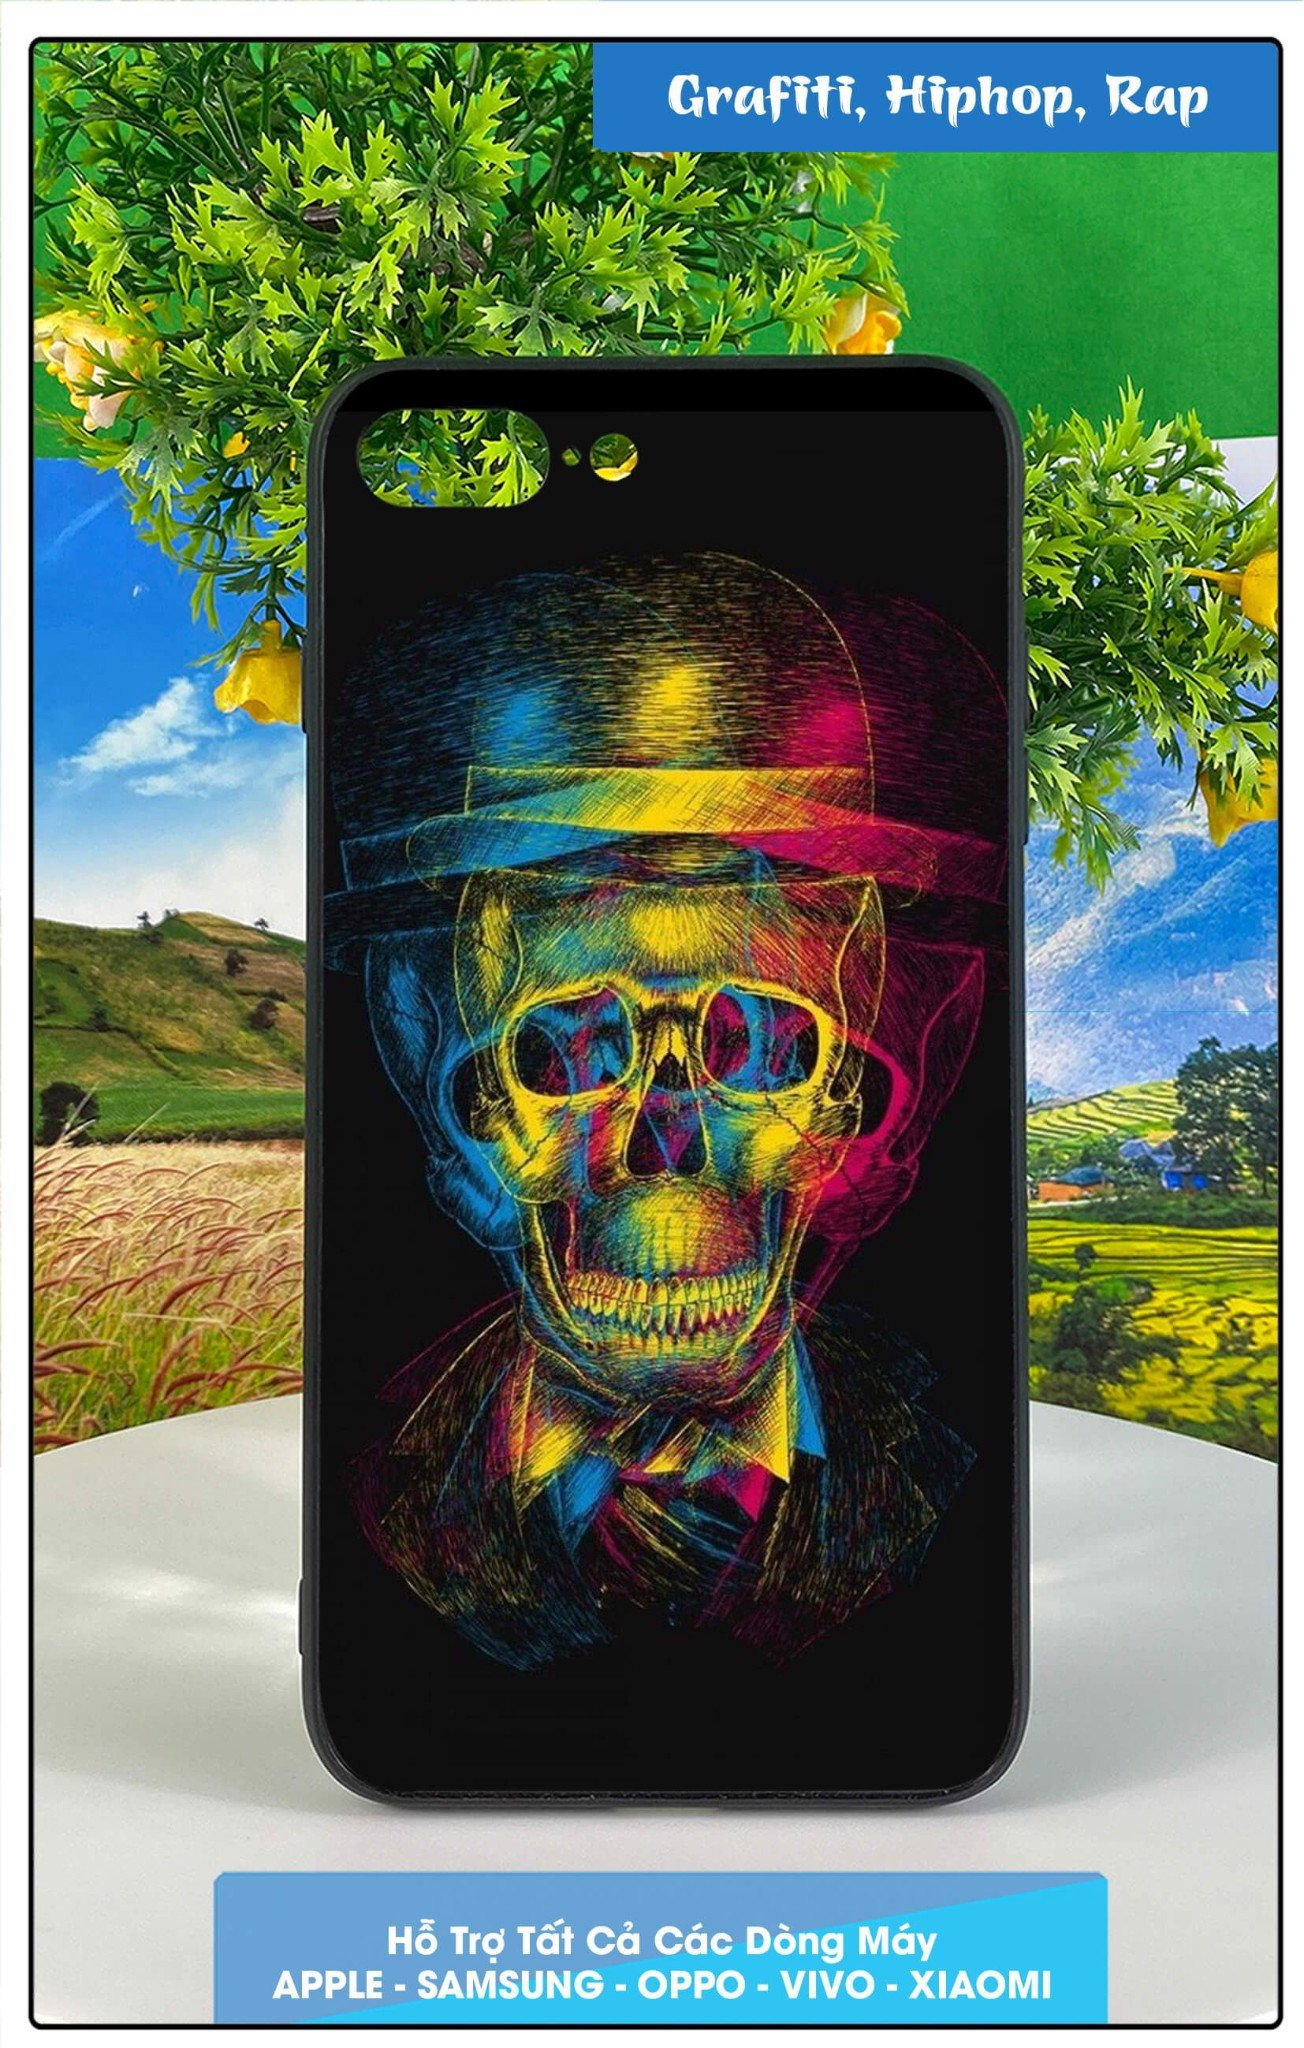 Ốp Iphone 7 plus in hình grafiti, hip-hop, rap